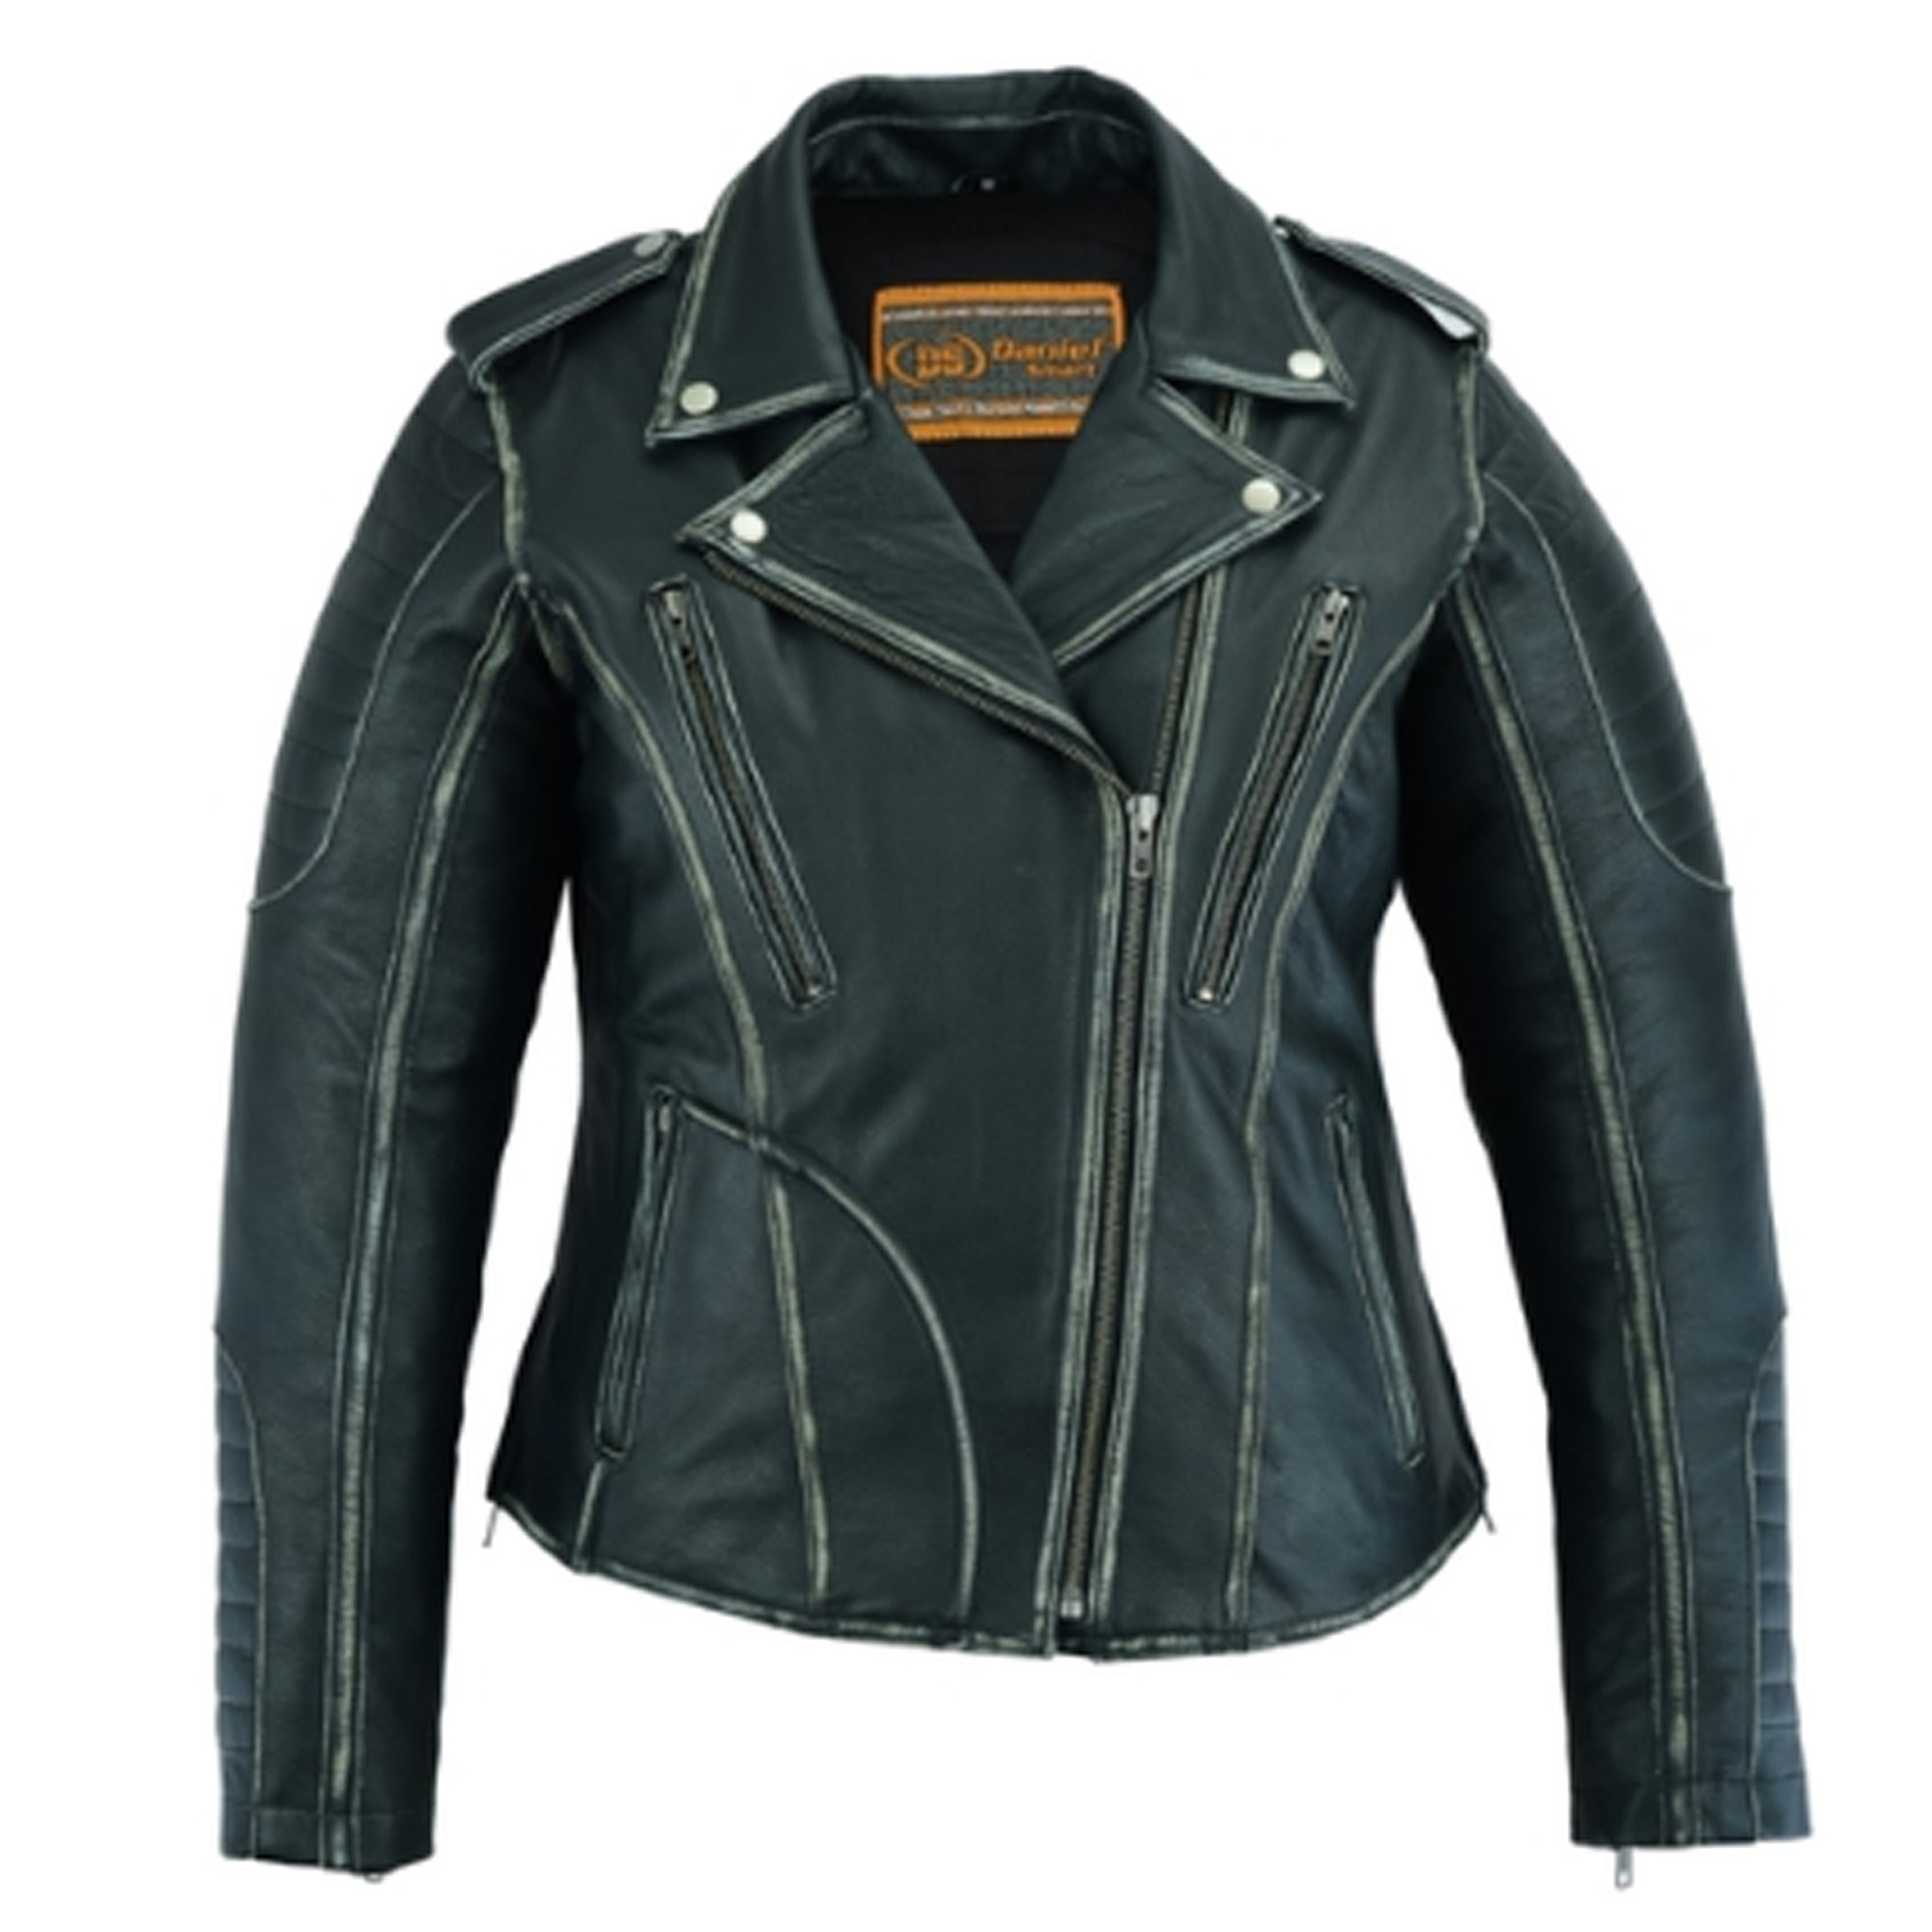 Daniel Smart Women's M/C Jacket With Rub-Off Finish - 421 Moto Gear